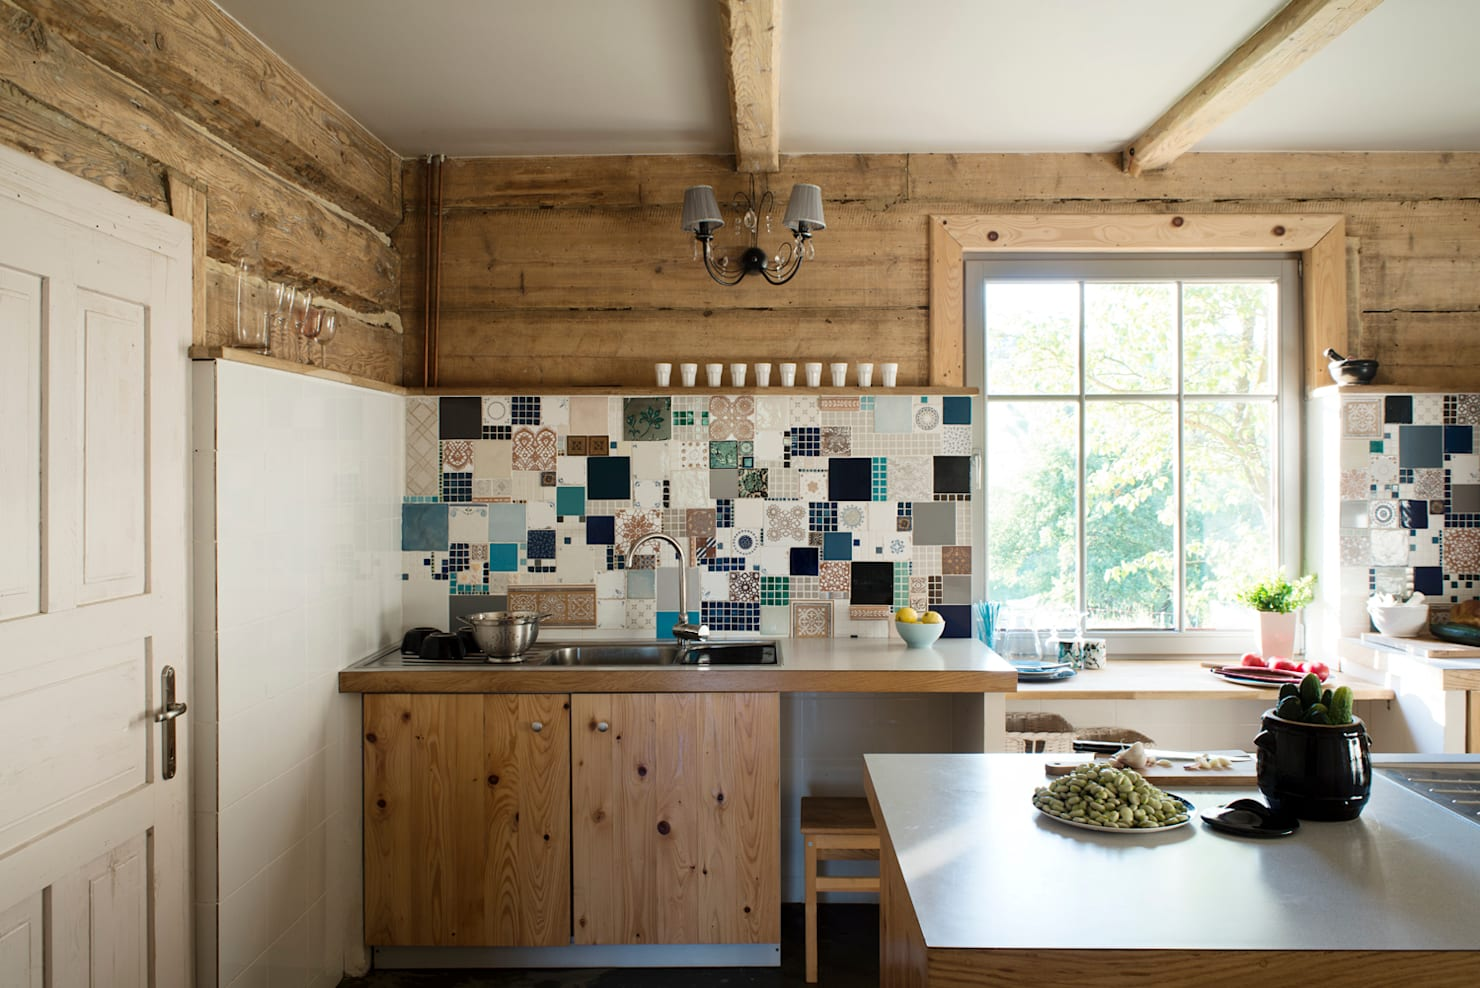 10 incredible ideas for your kitchen walls